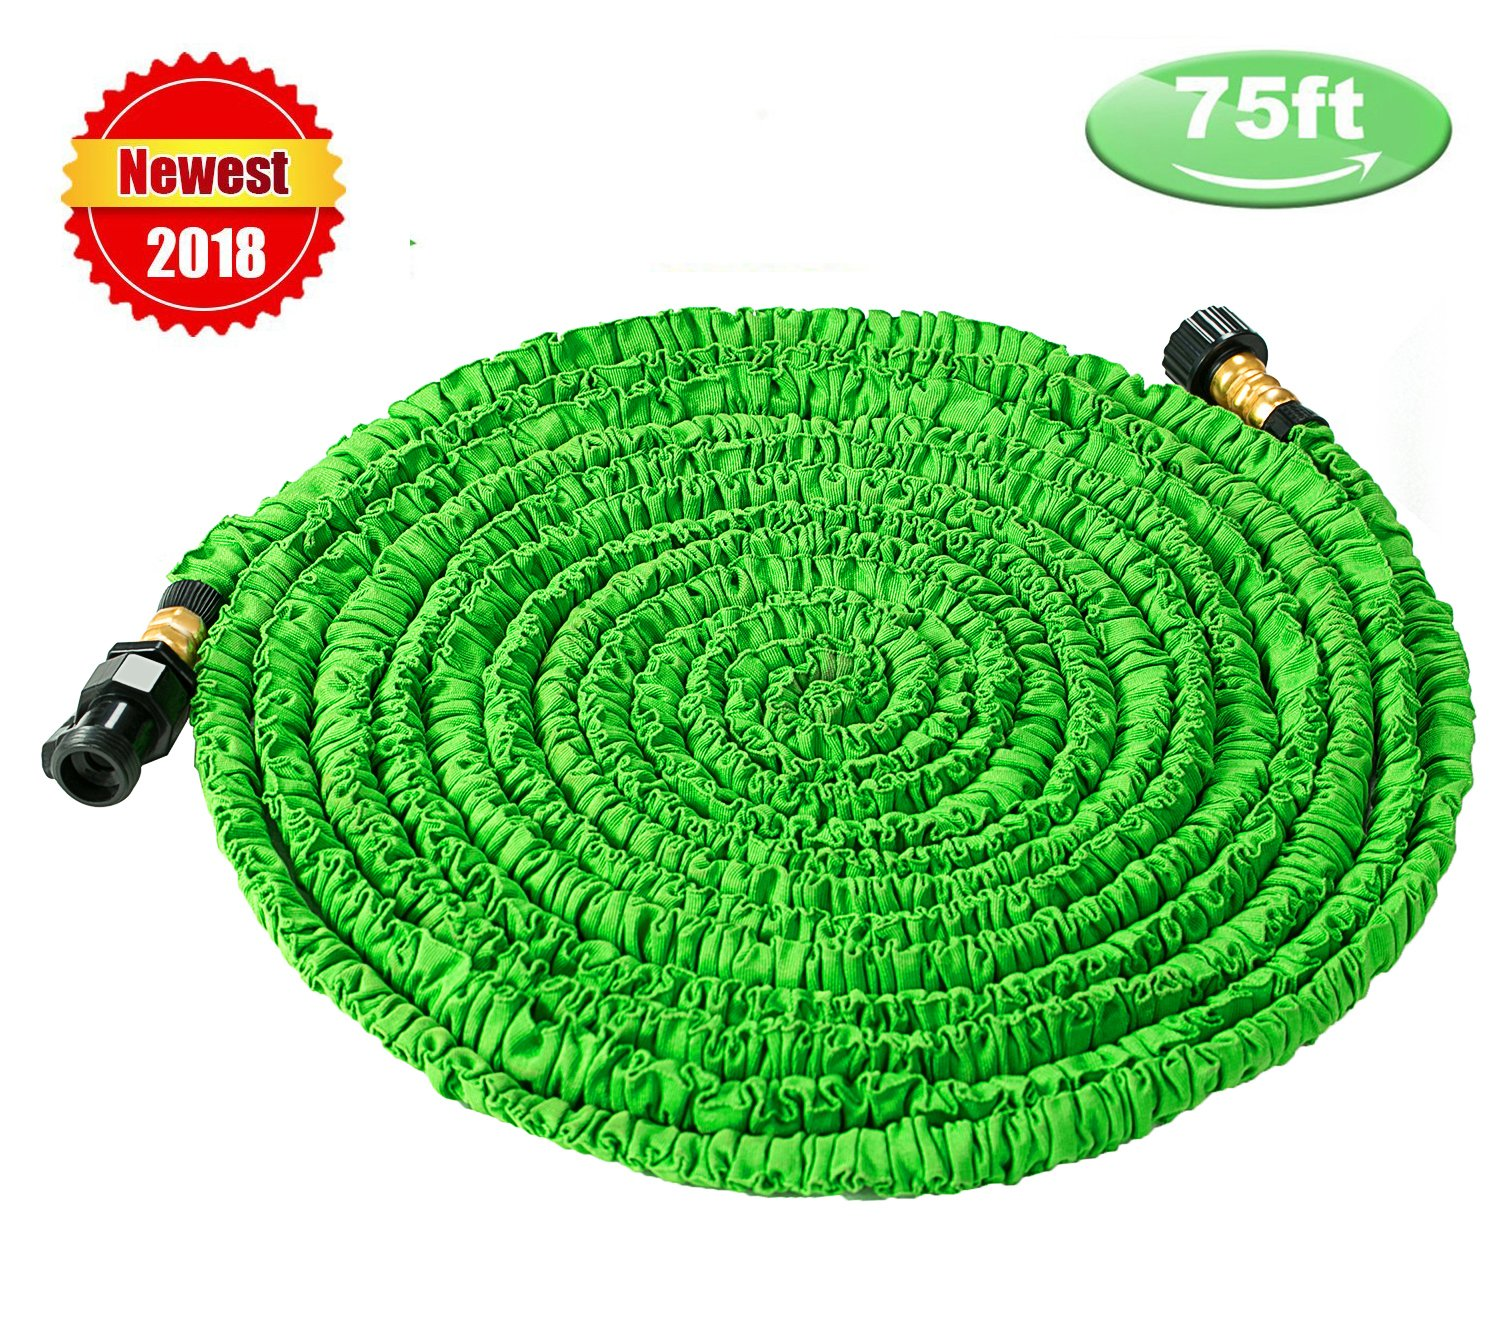 Wingogh Newest Expandable Garden Hose - 75ft Expanding Pressure Garden Water Hose, Latest Improved Extra Strength Fabric Protection Flexible Lightweight for Outdoor Watering Needs